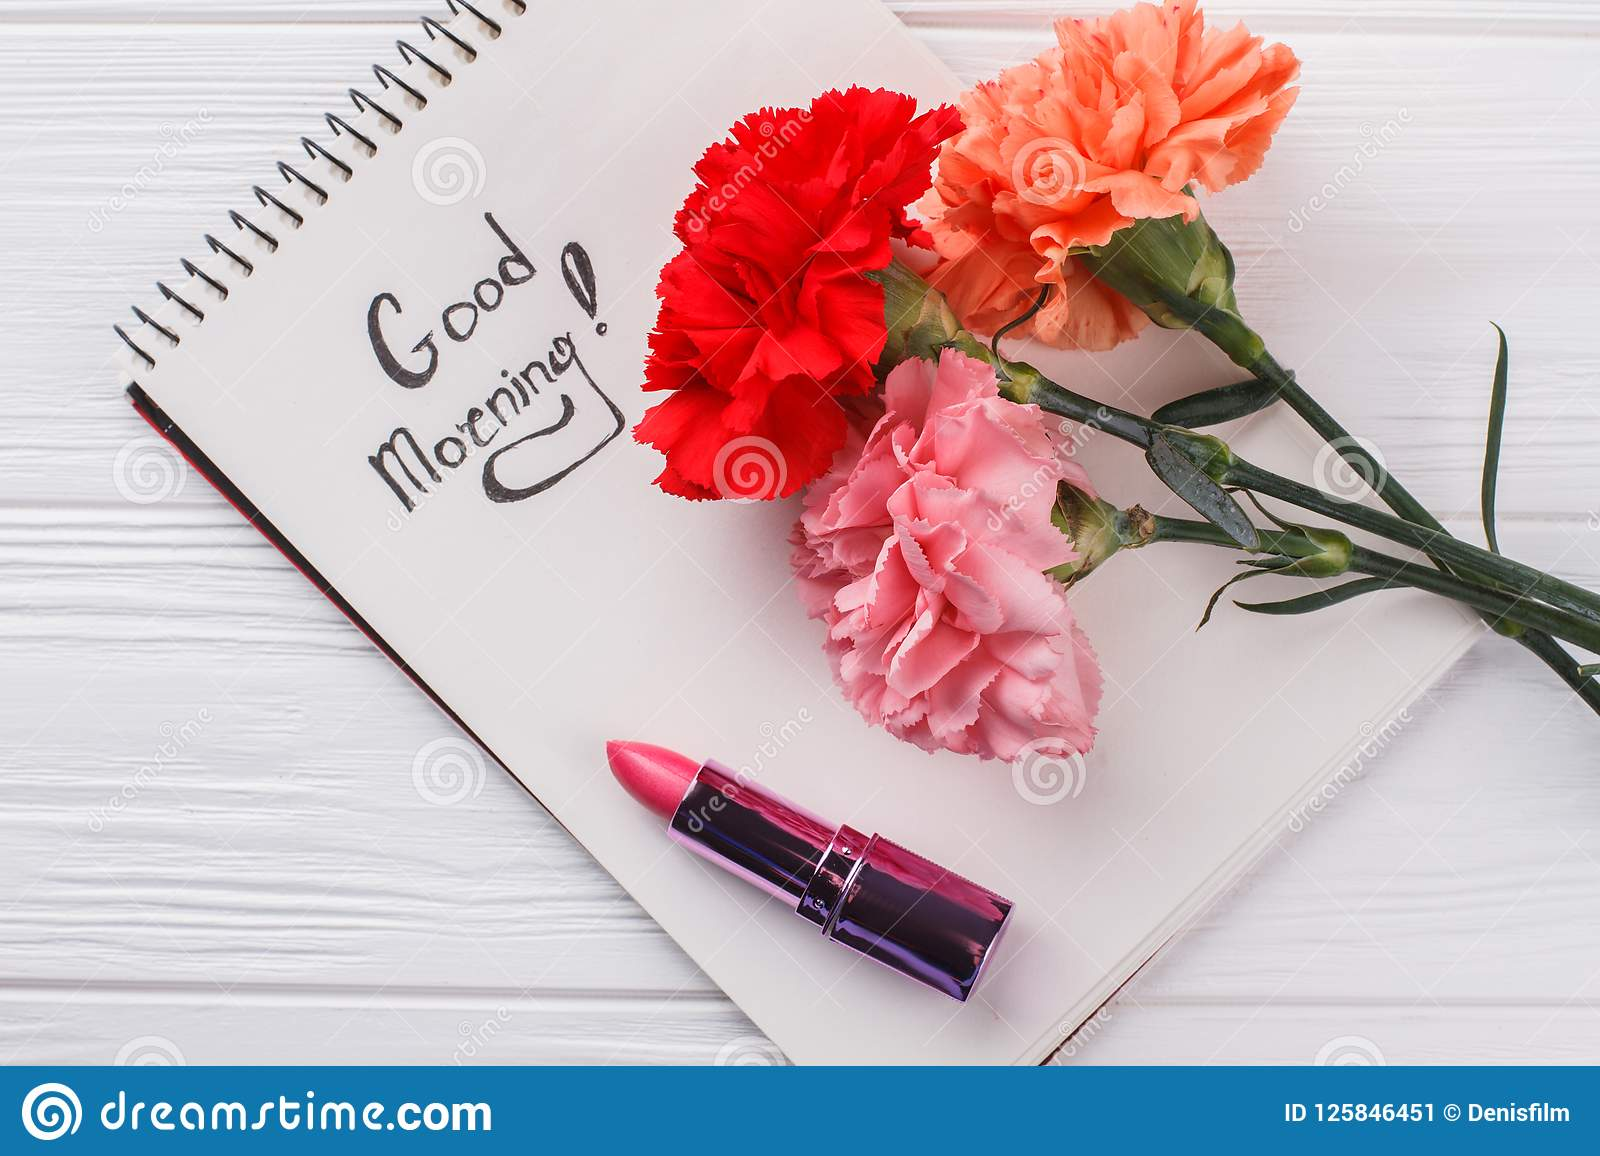 Carnation Flowers Good Morning Wish And Lipstic Stock Image